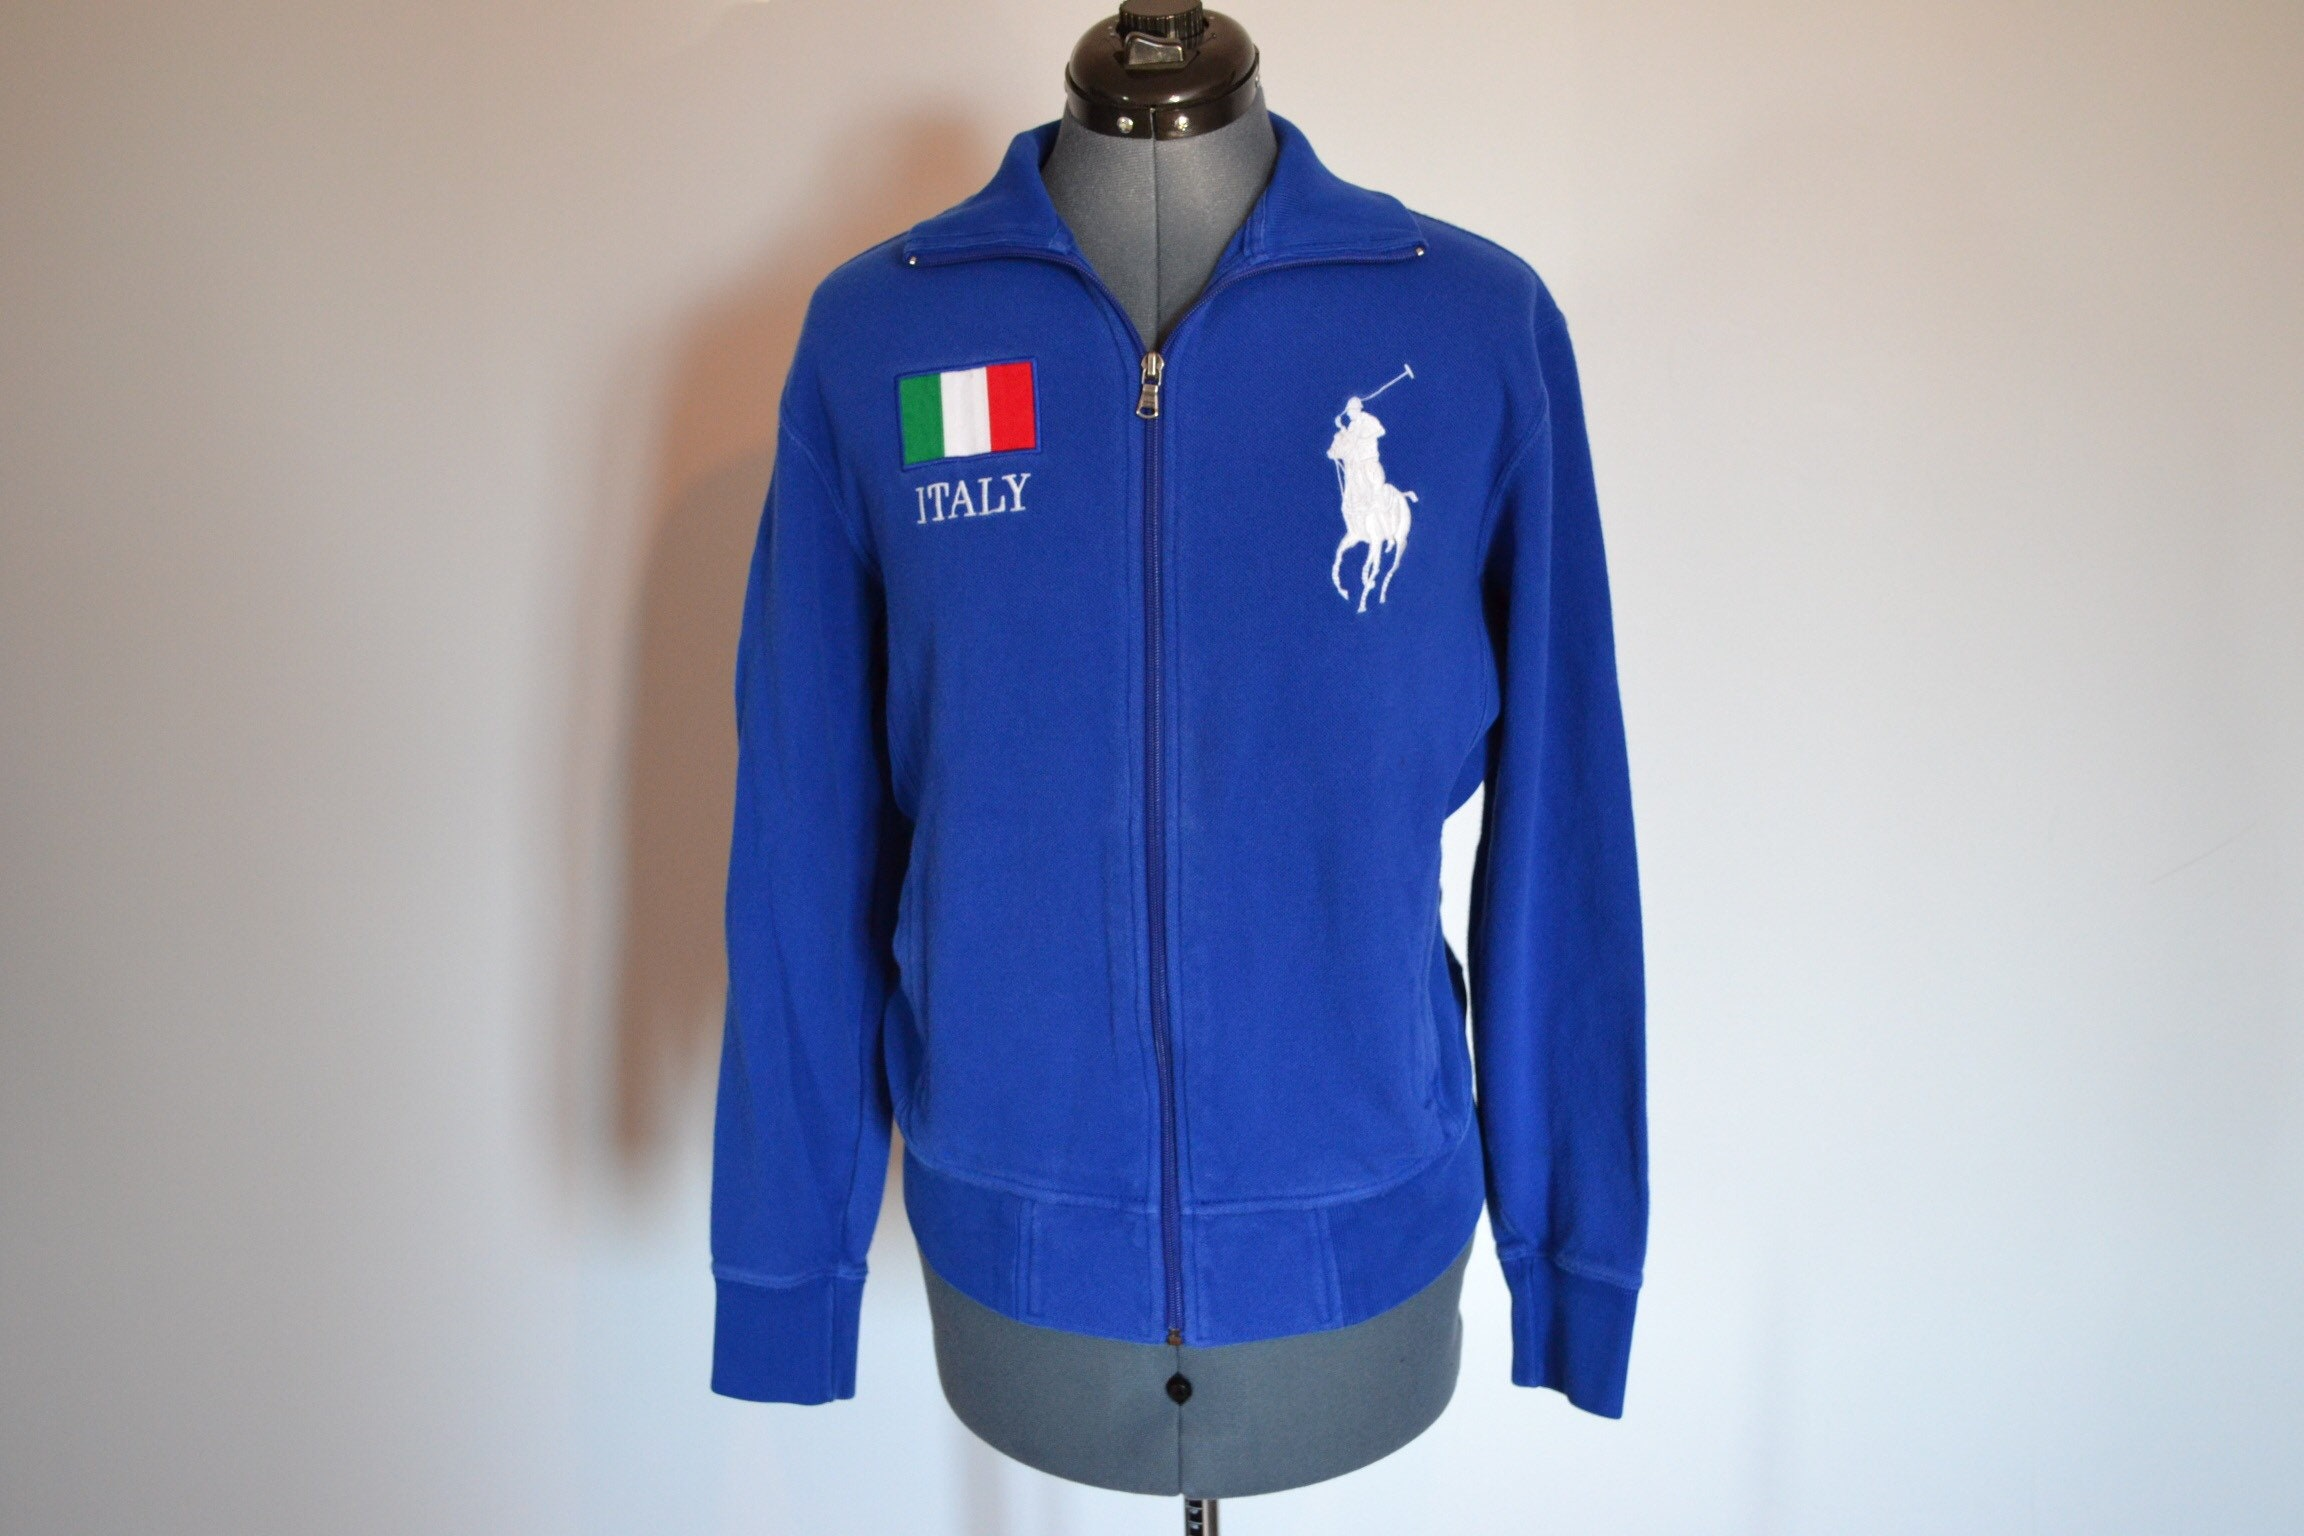 Vintage Polo Ralph Lauren Italy Zip Up Sweatshirt Size Small Etsy